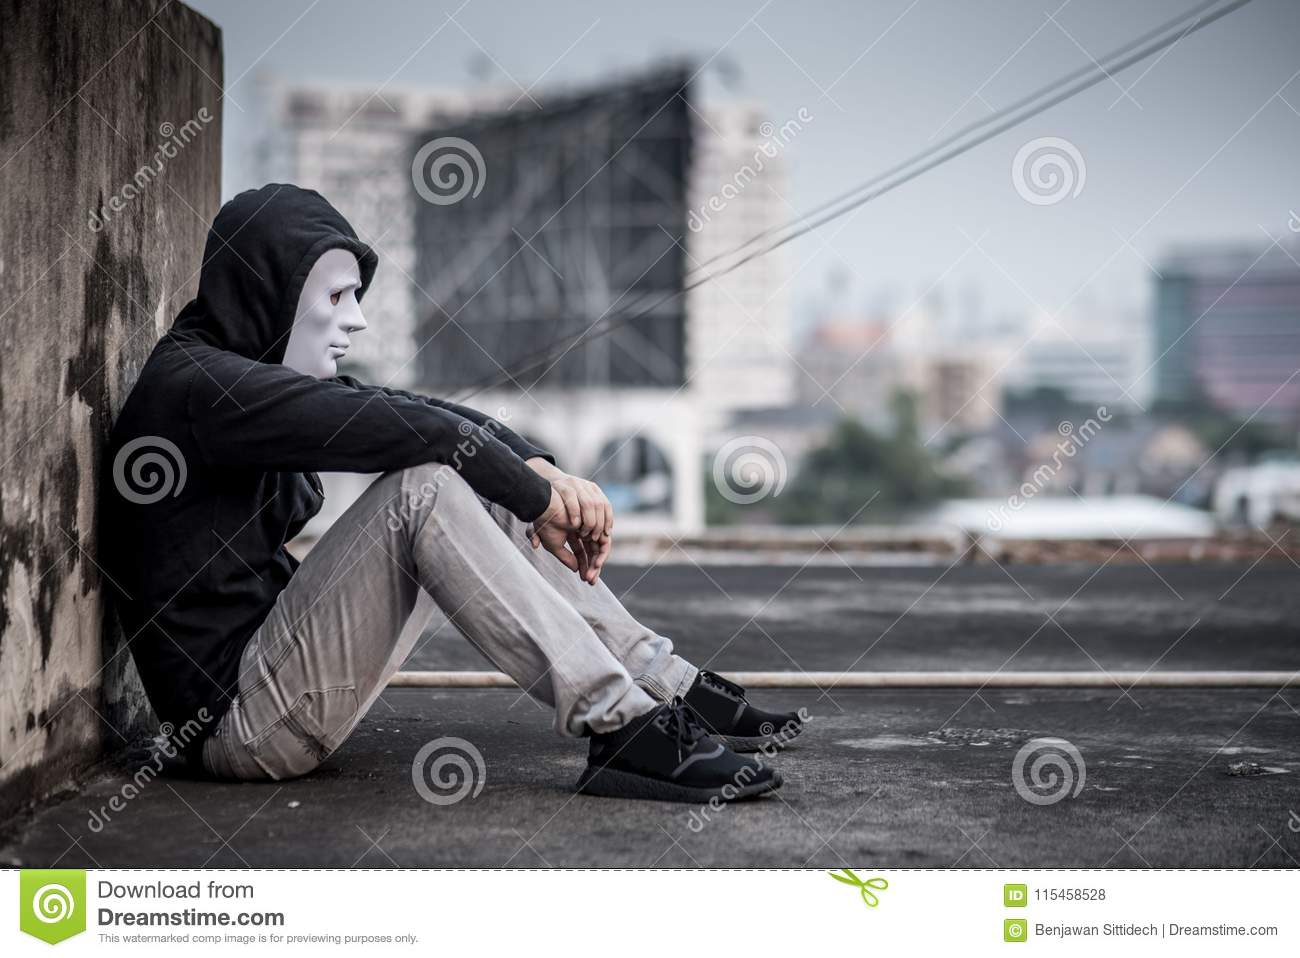 Mystery man in white mask feeling sad and depressed